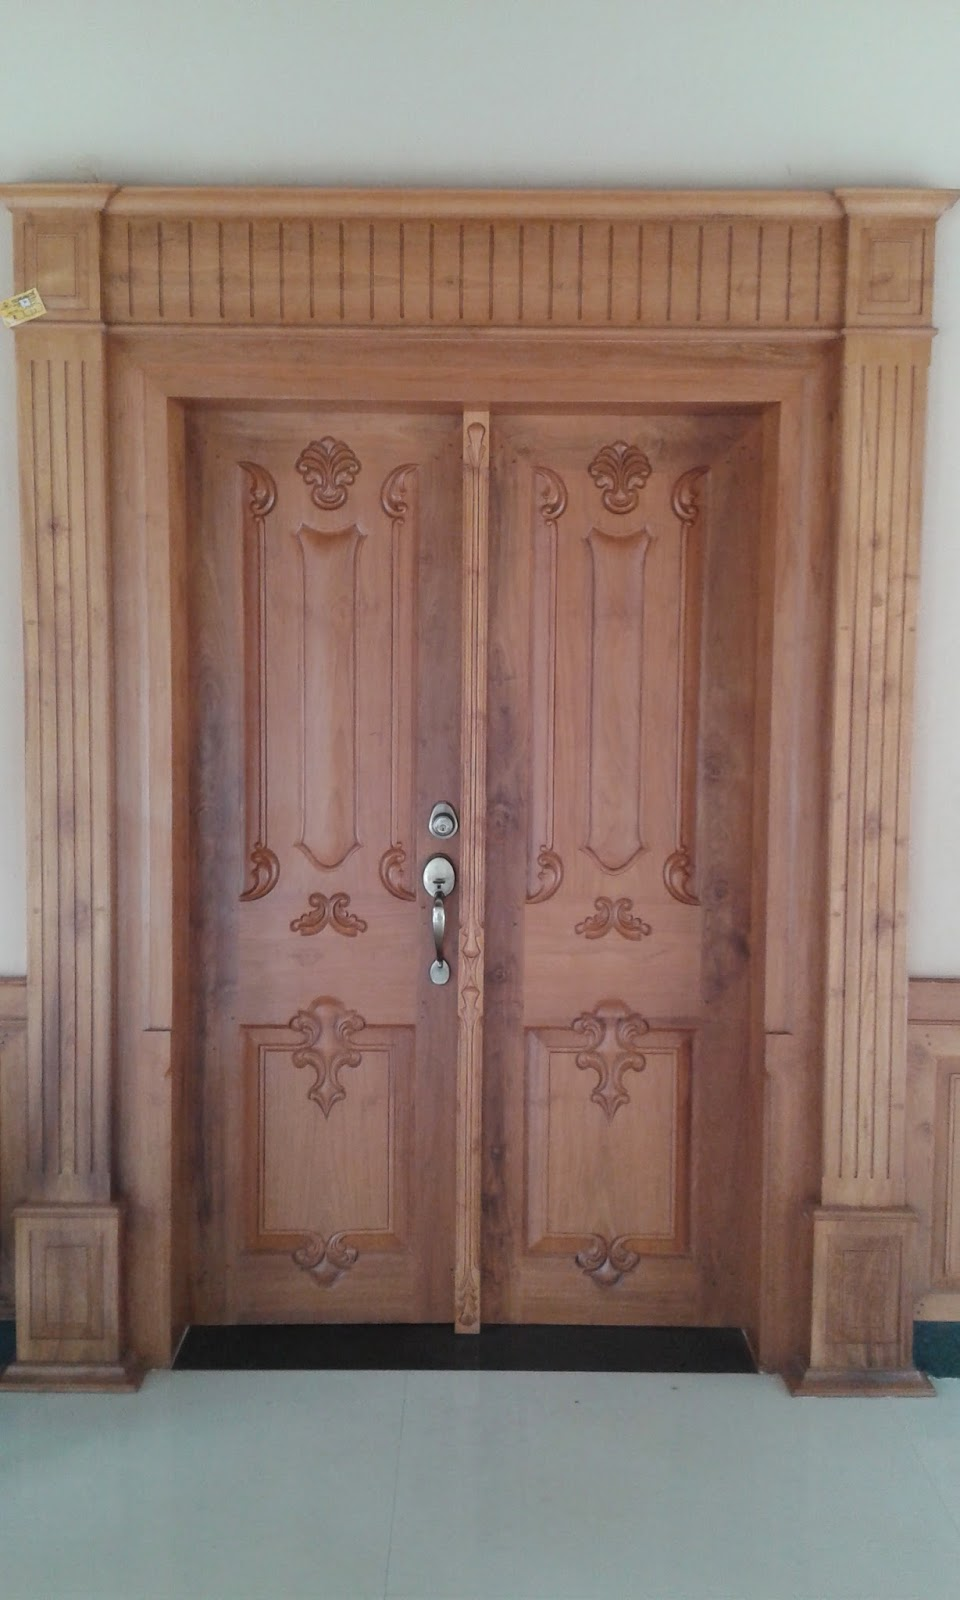 Main Door Design Images Of Kerala Style Carpenter Works And Designs